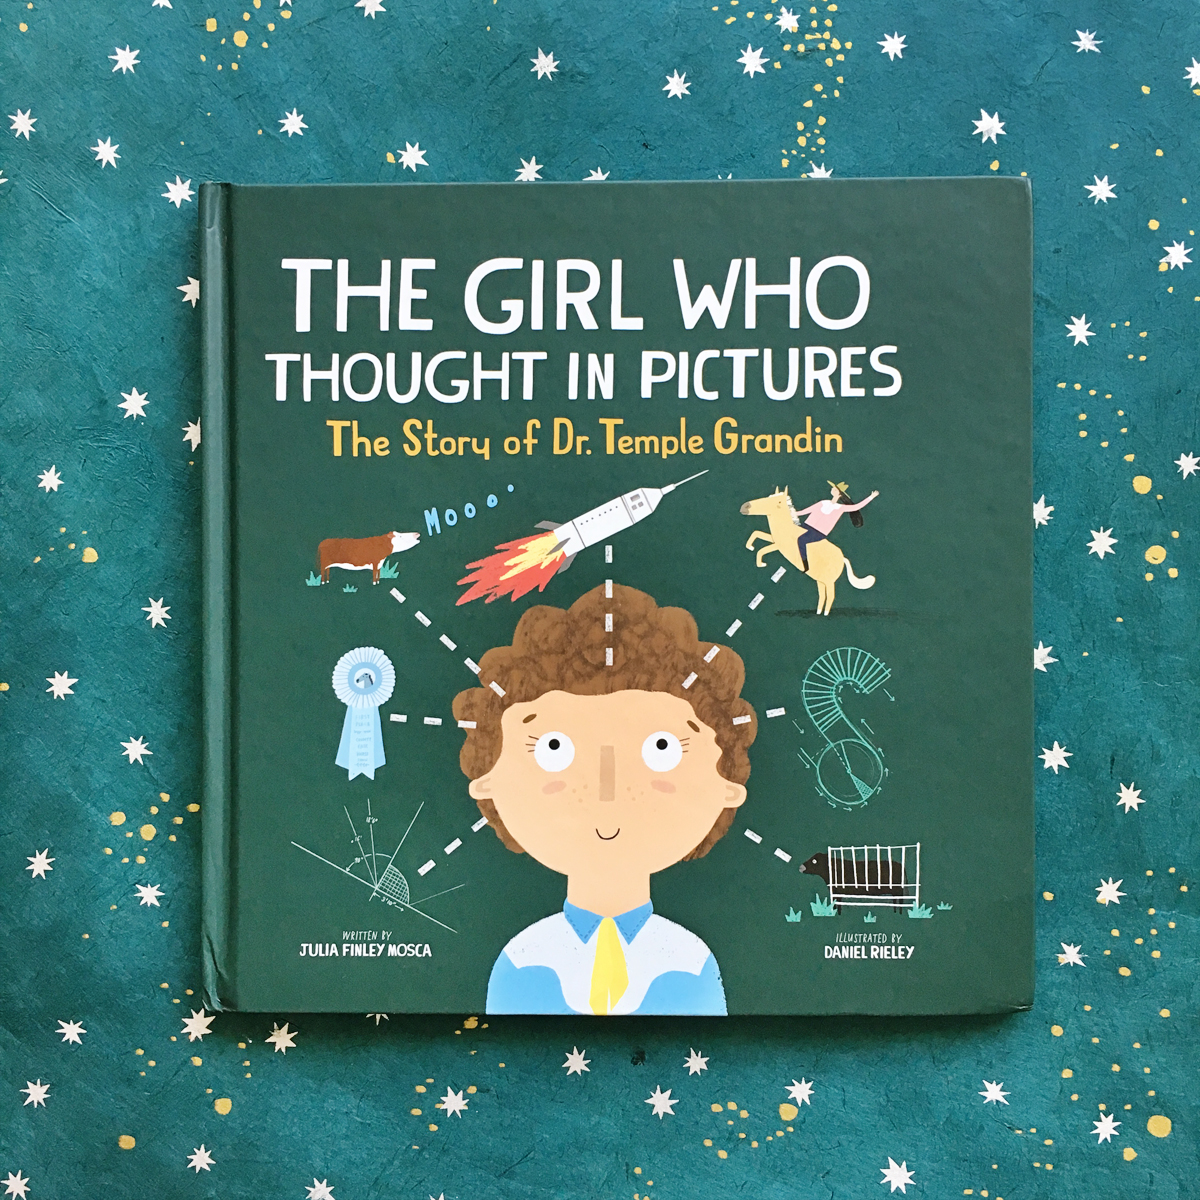 The Girl Who Thought in Pictures: The Story of Temple Grandin | Books For Diversity